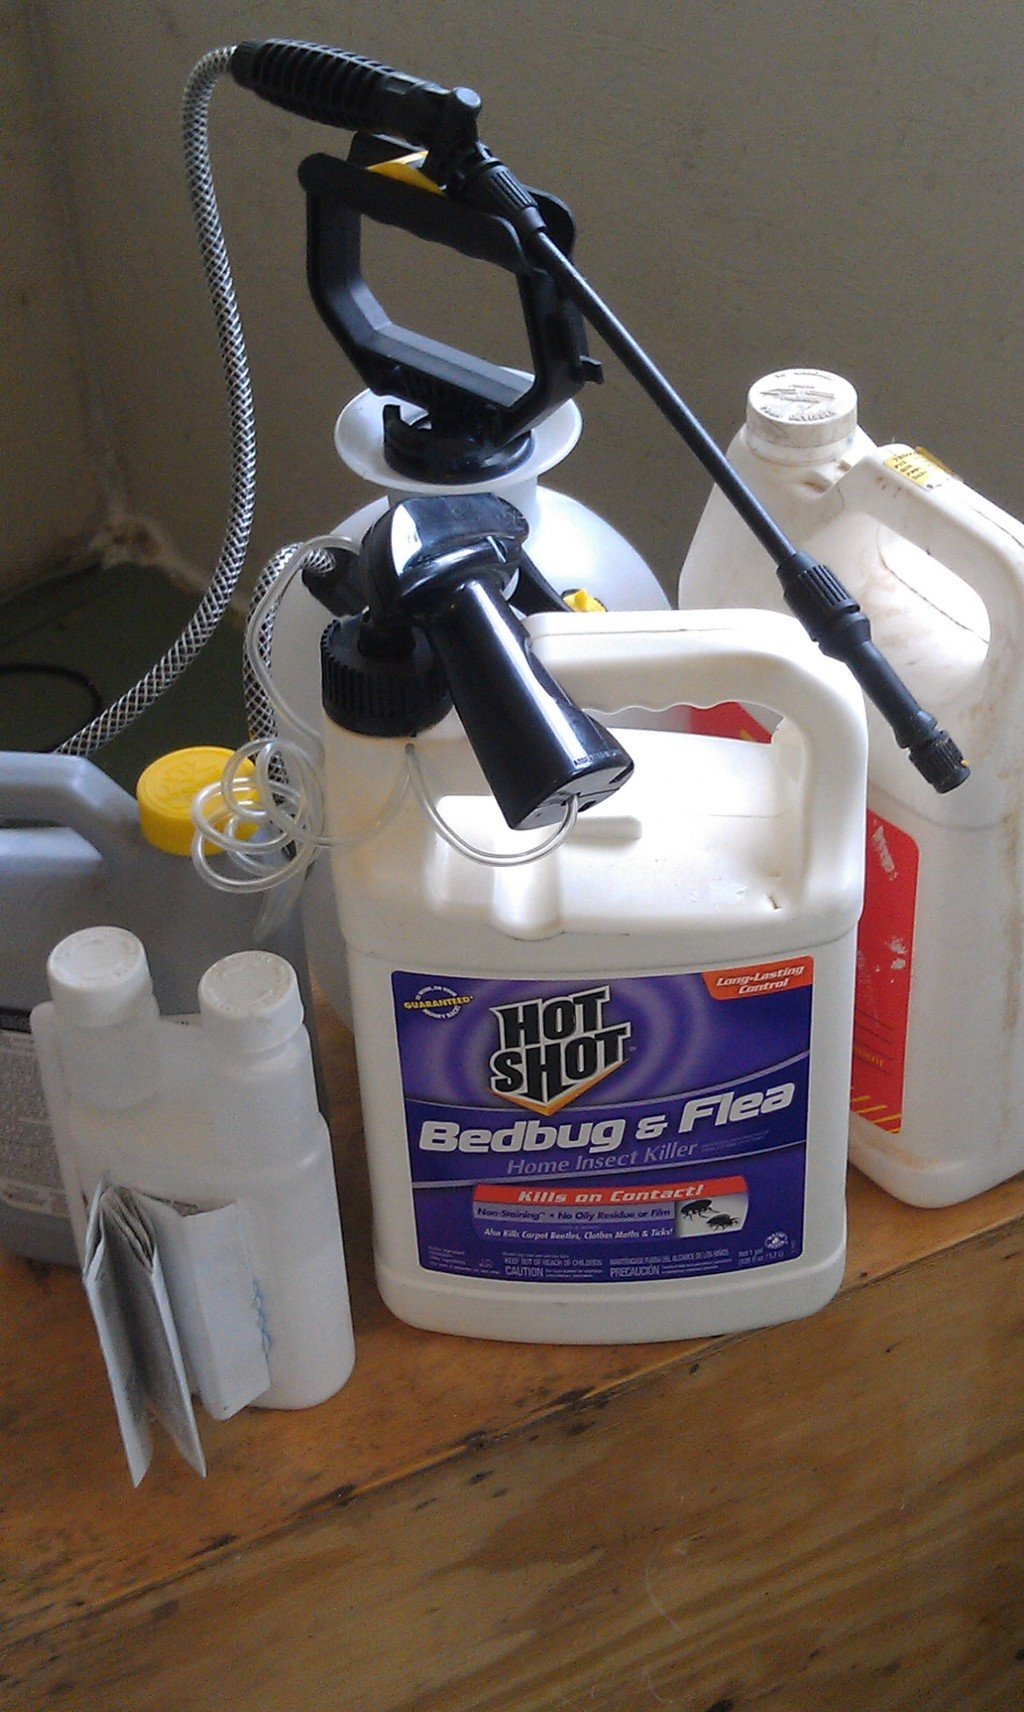 Bed Bug Spray Home Depot >> List Of Stores That Sell Bed Bug Spray - A Buyers Guide